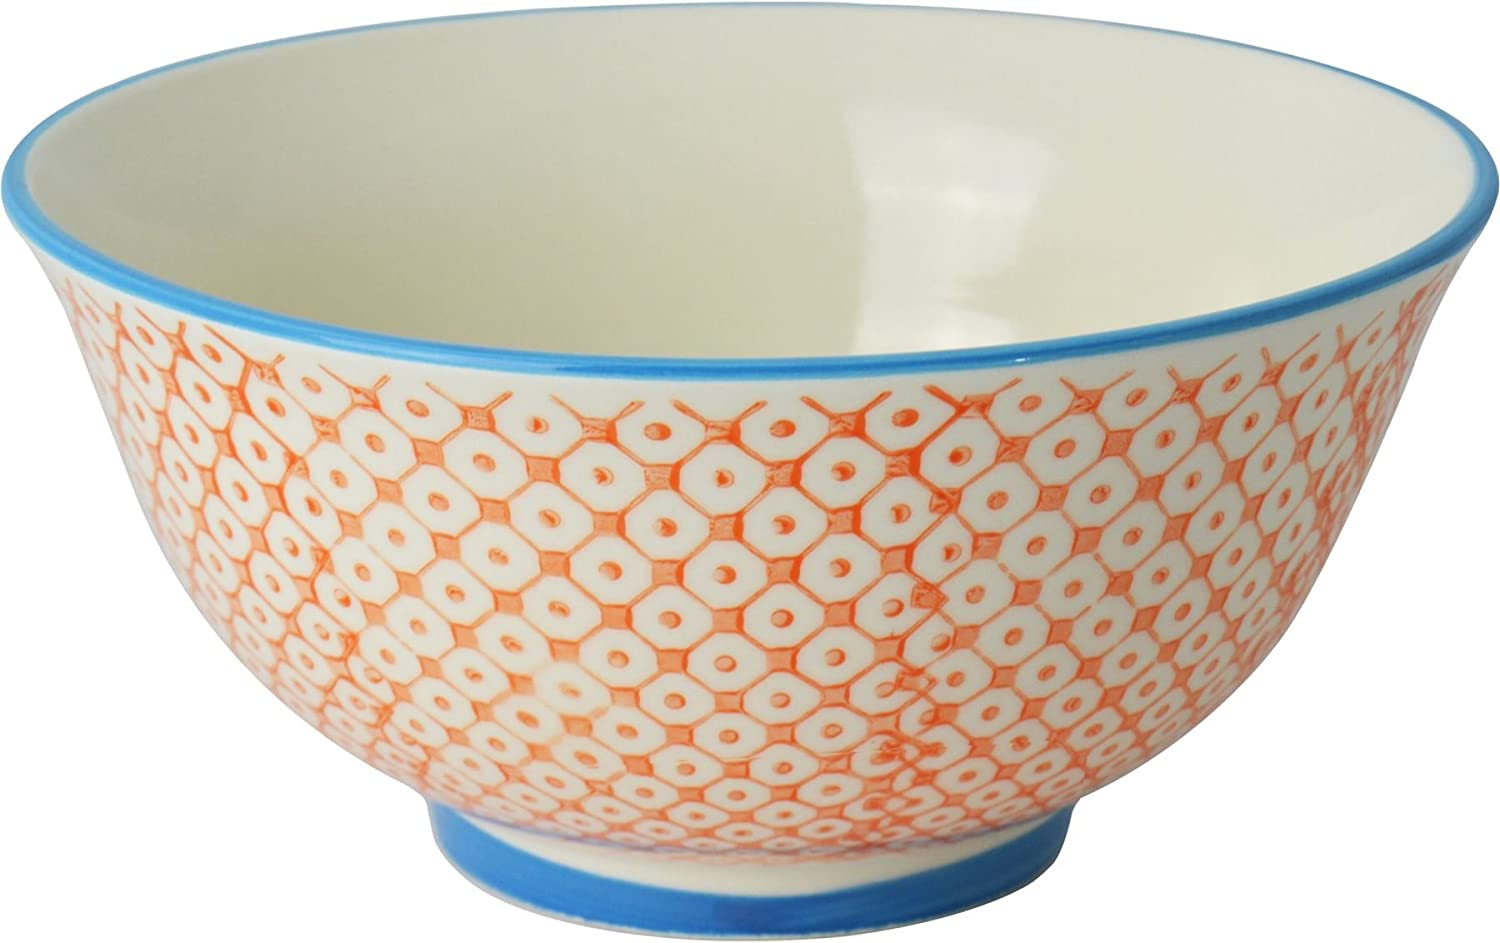 Nicola Spring Patterned Cereal Bowl - 152mm (6 Inches) - Orange / Blue Print Design